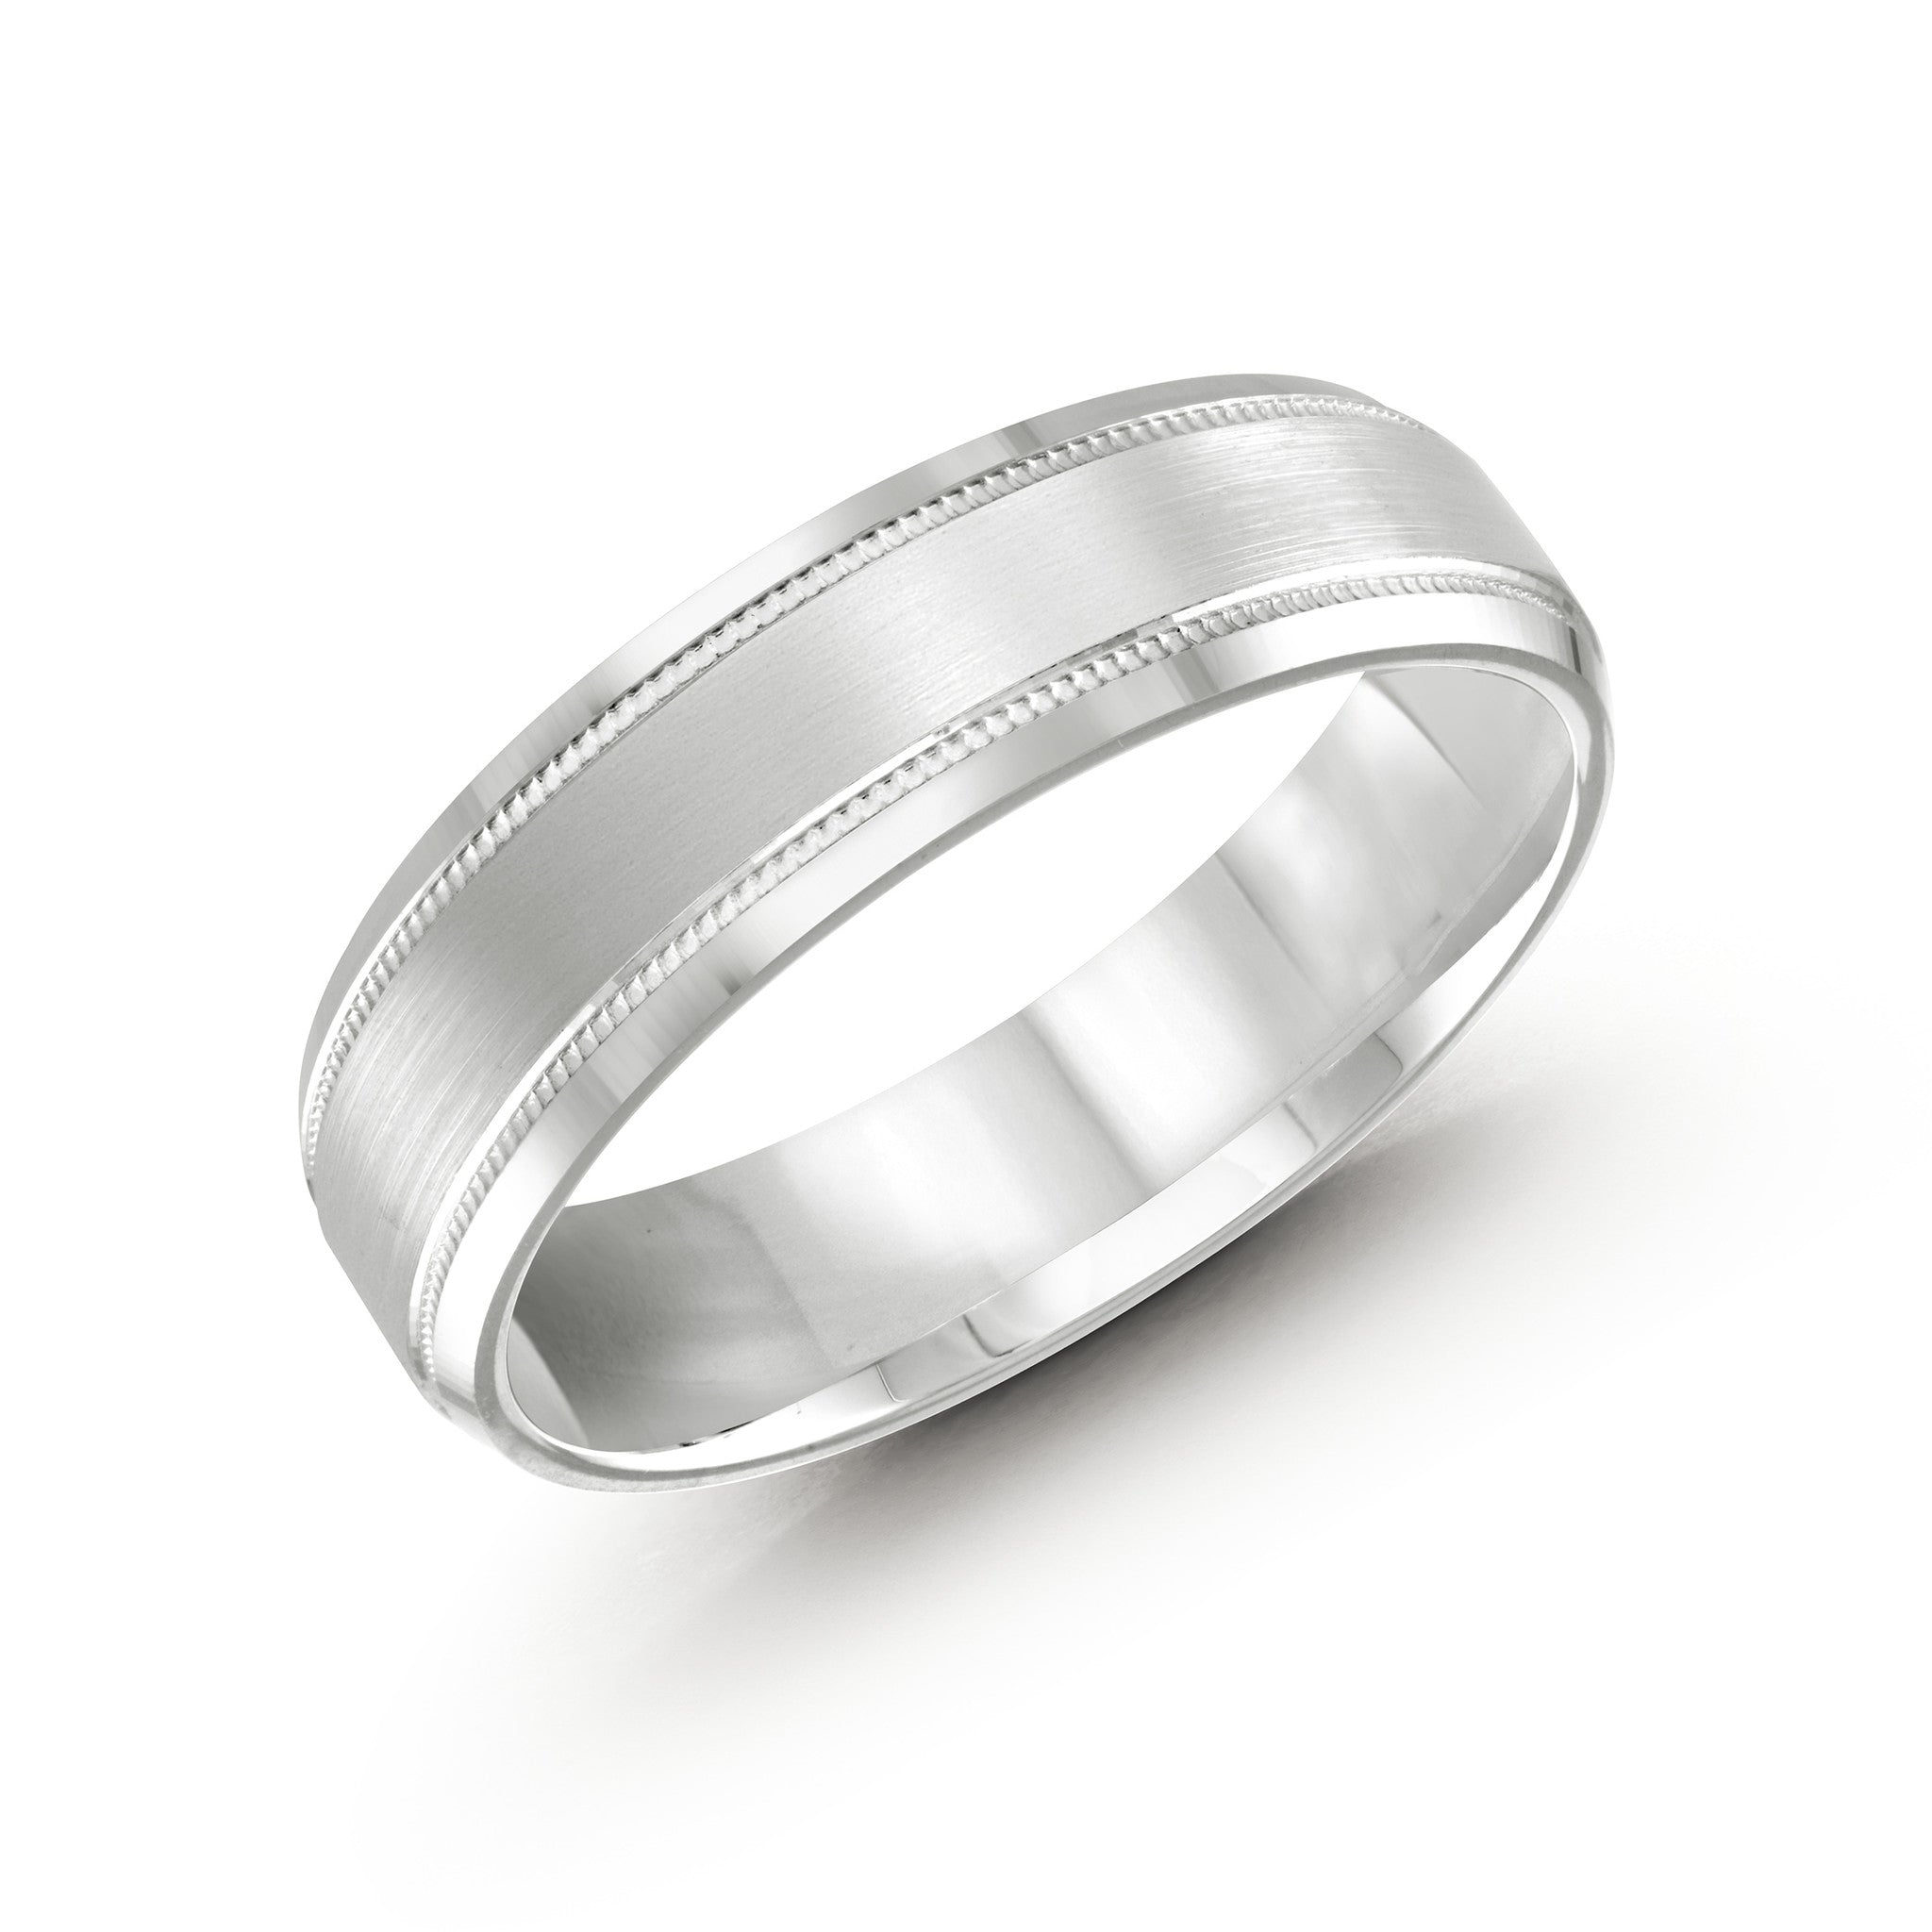 Malo Mens White Gold Wedding Band With Satin Finish, Milgrain, and Stripes